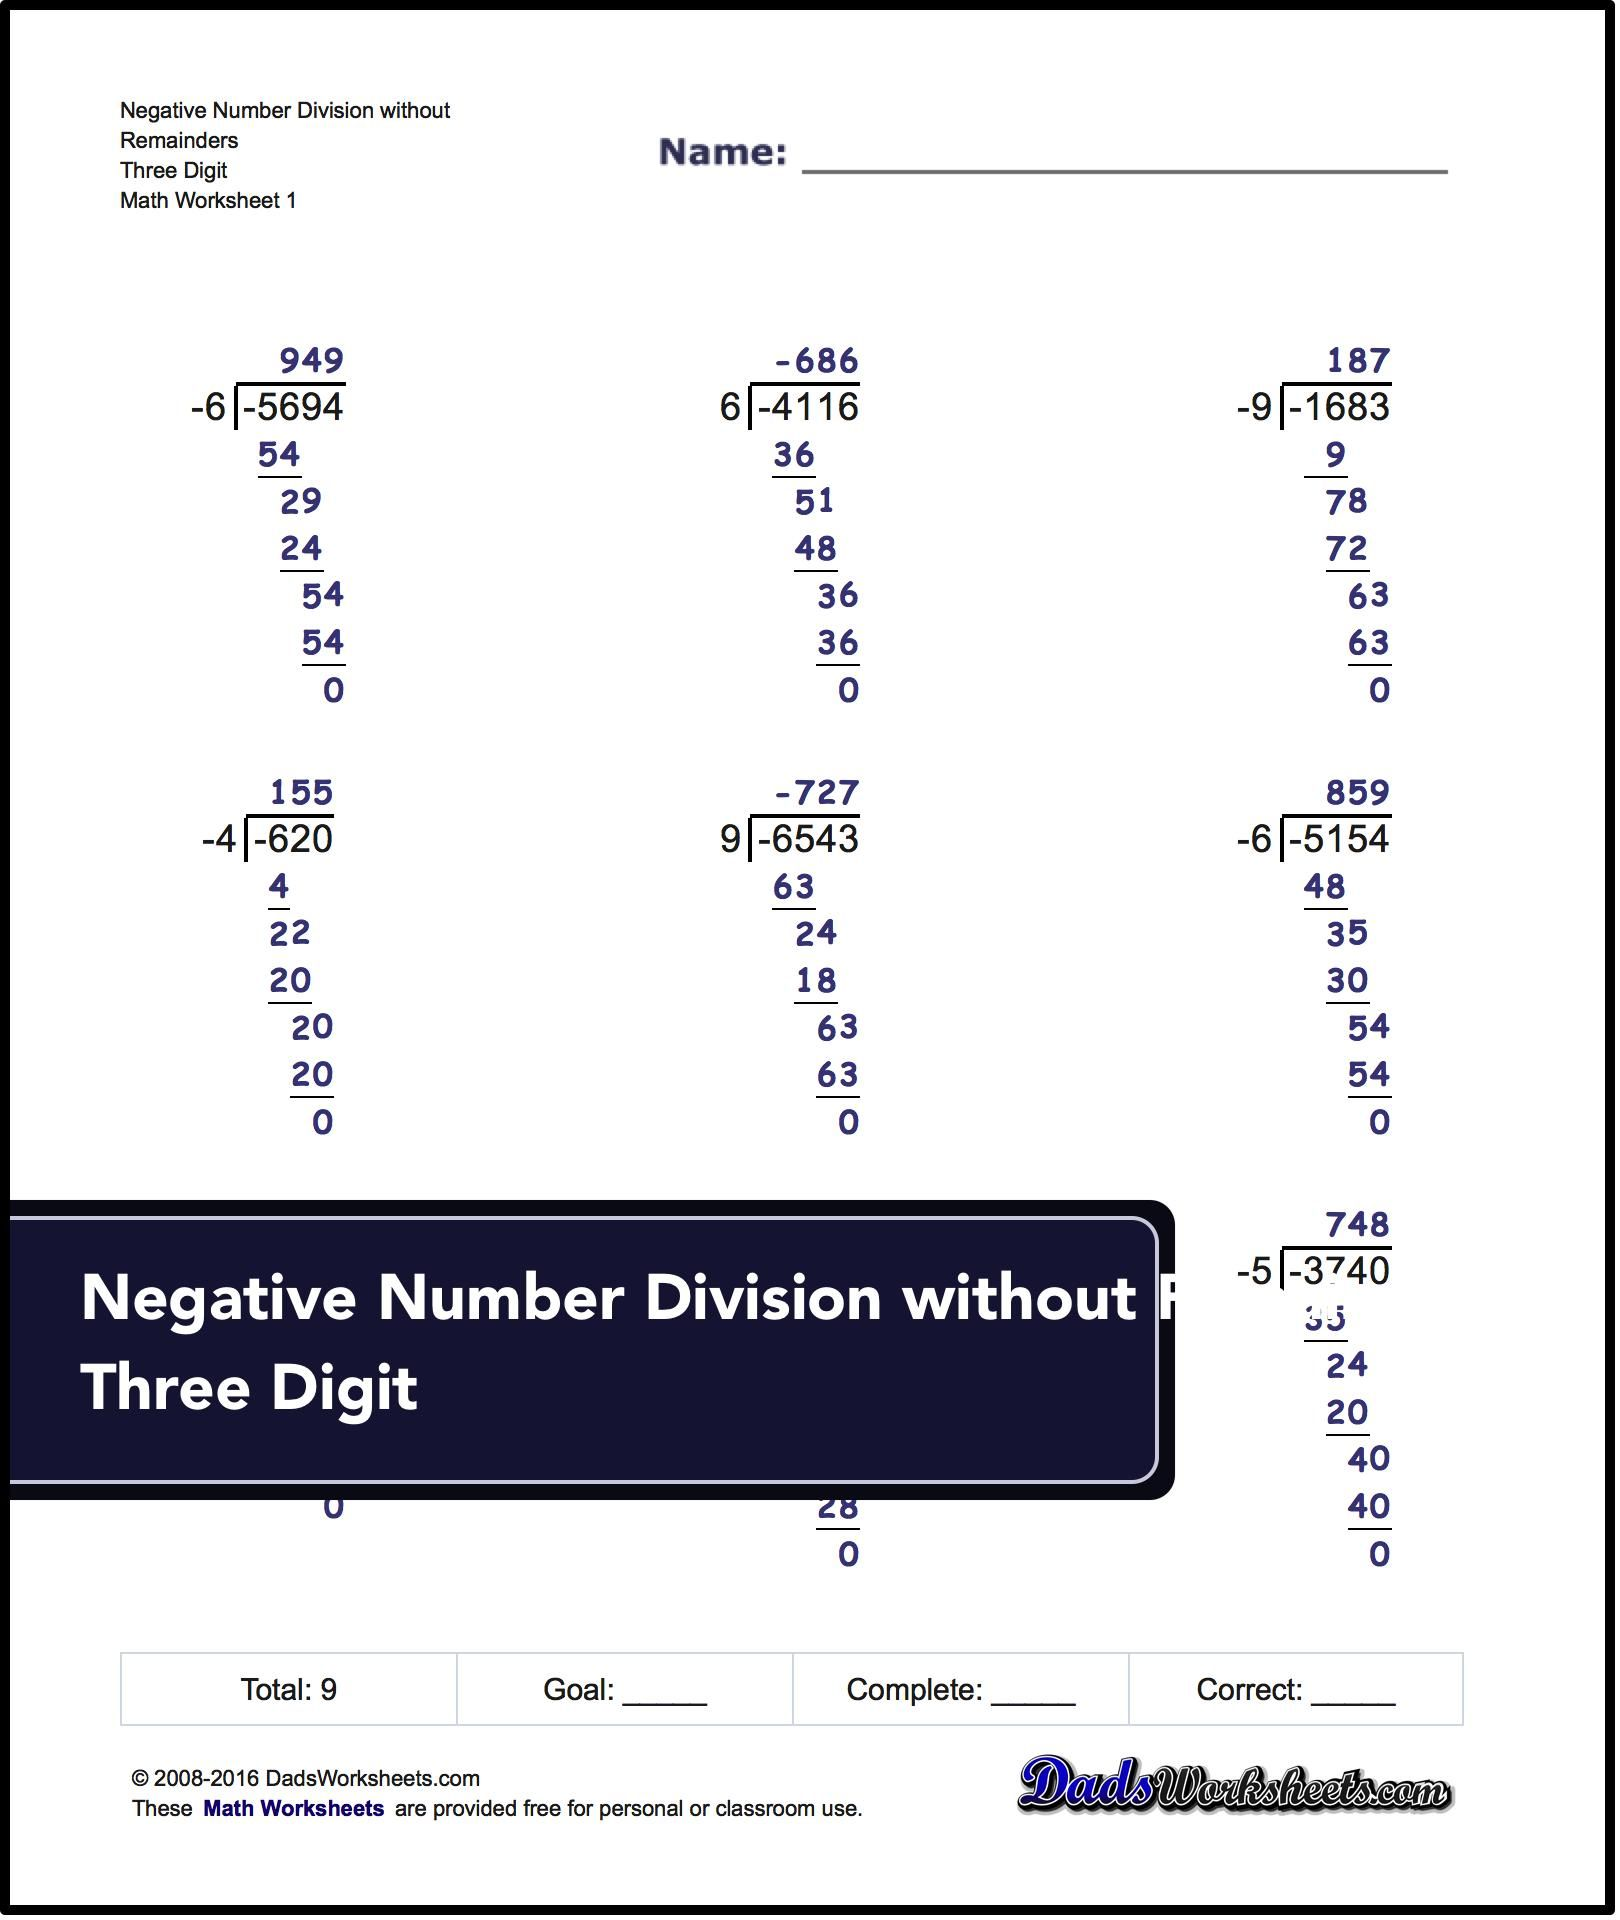 Free Math Worksheets For Negative Numbers